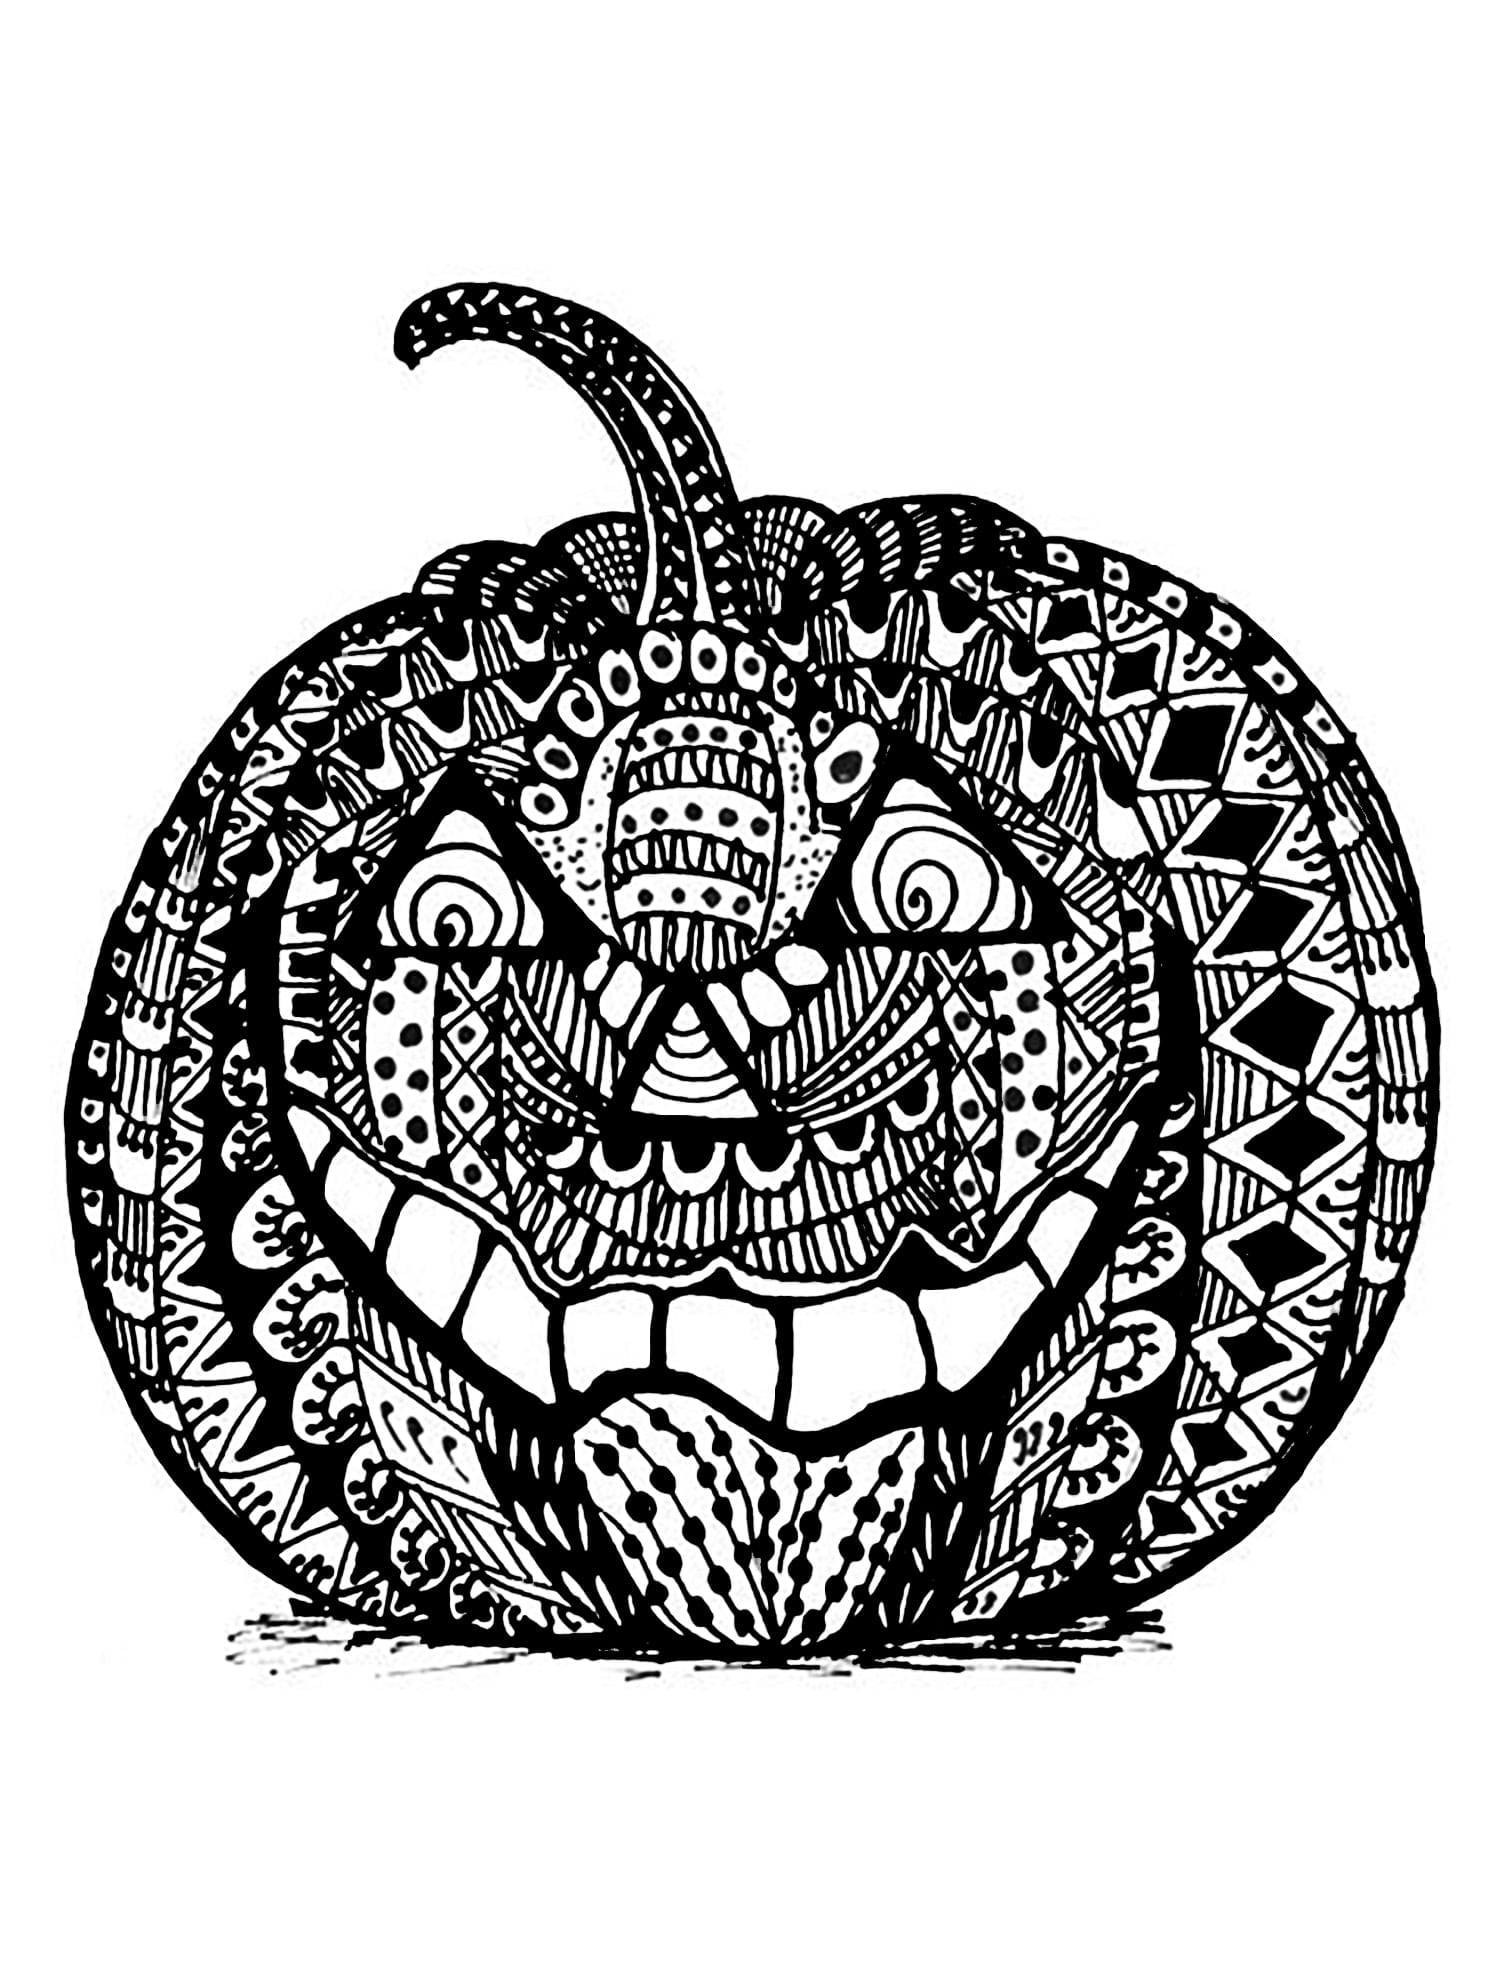 Halloween Coloring Pages For Adults Justcolor Throughout Adult